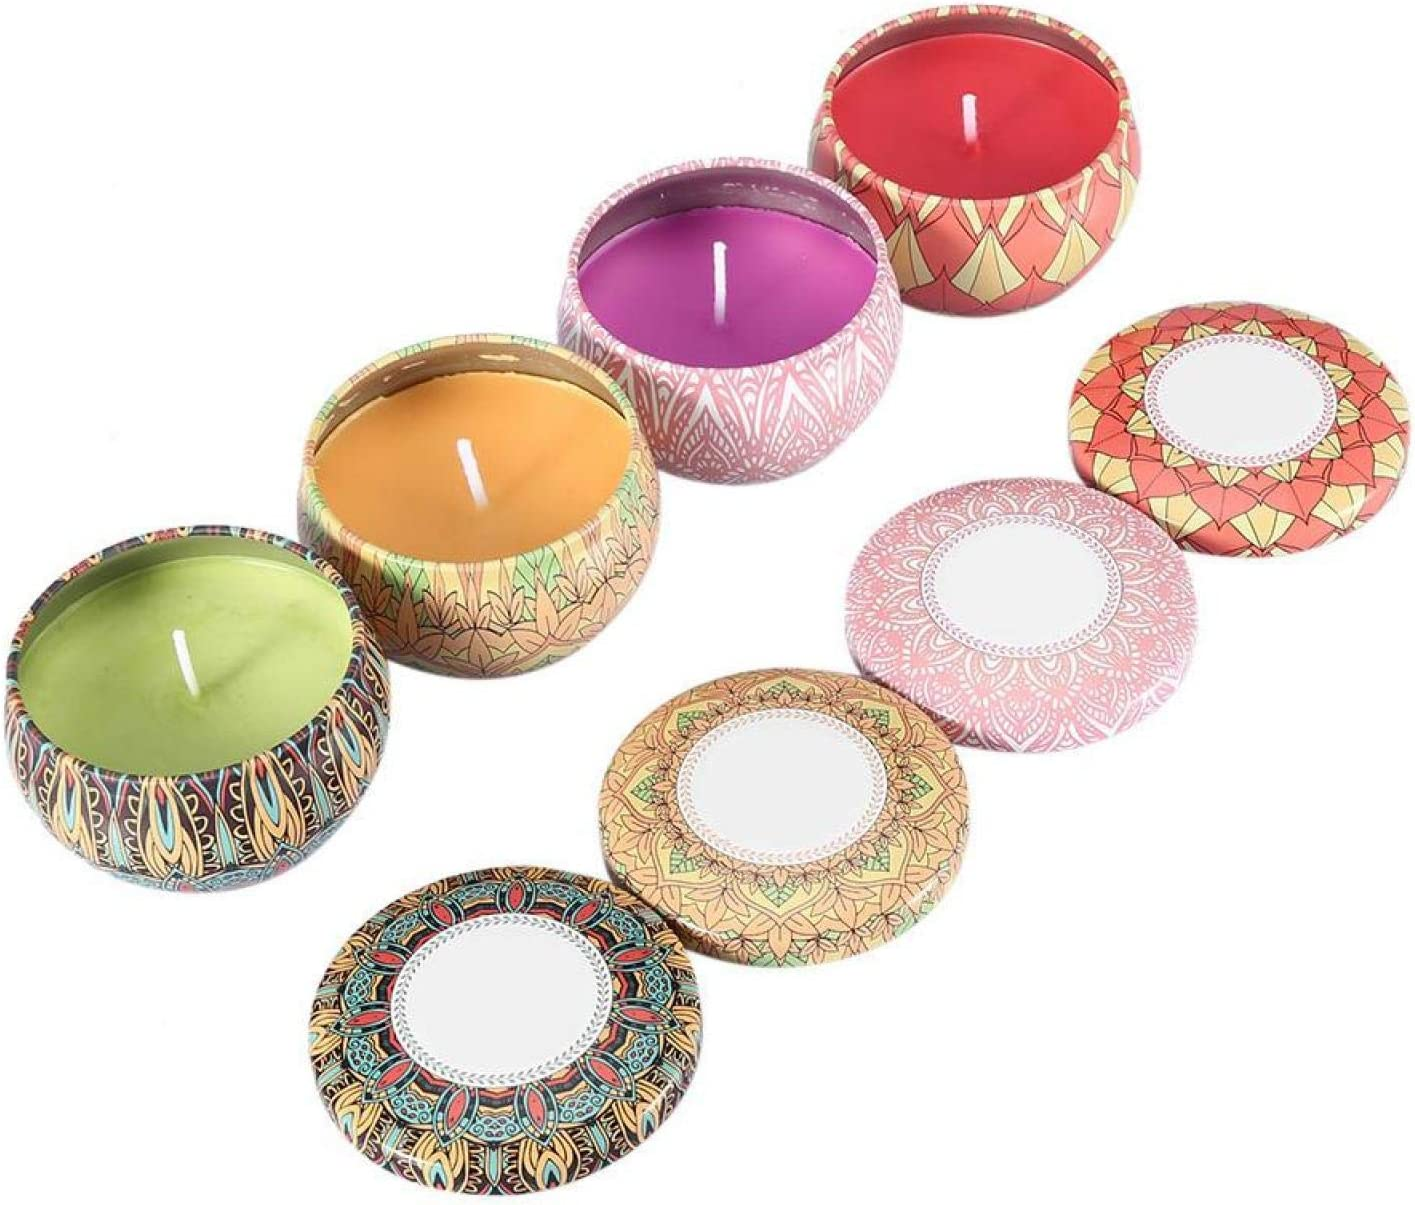 Omabeta Scented Ranking TOP11 Candles Gift Set Cand Translated 4PCS Portable